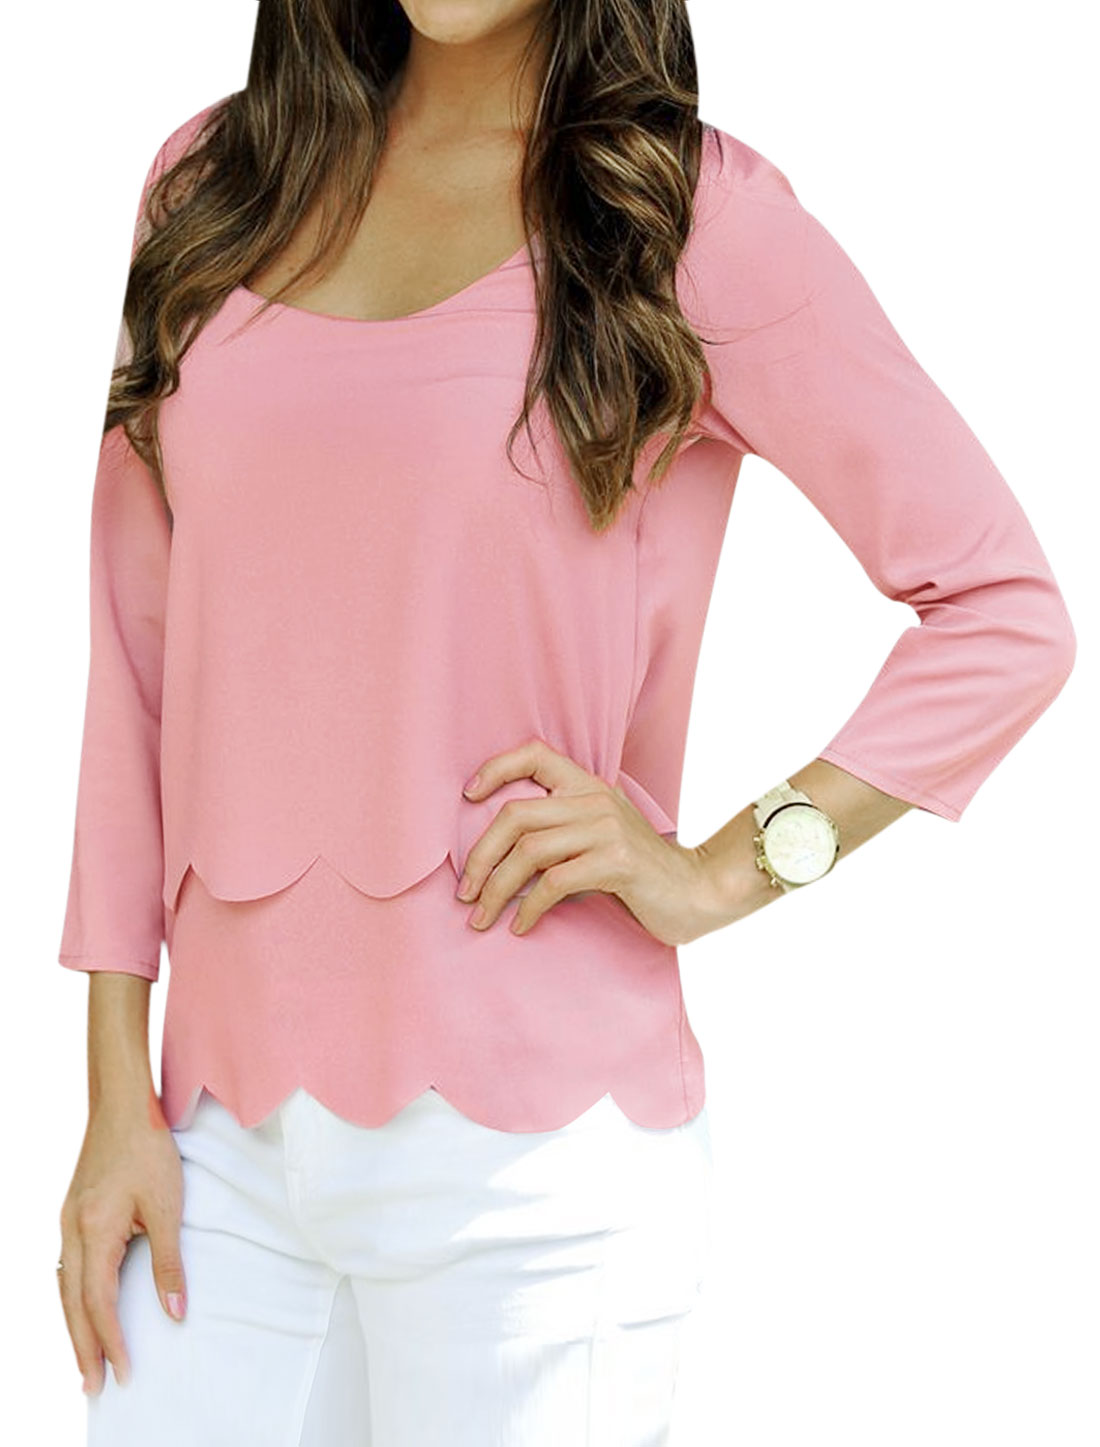 Woman Pollover Scalloped Trim Layered Casual Top Pink M